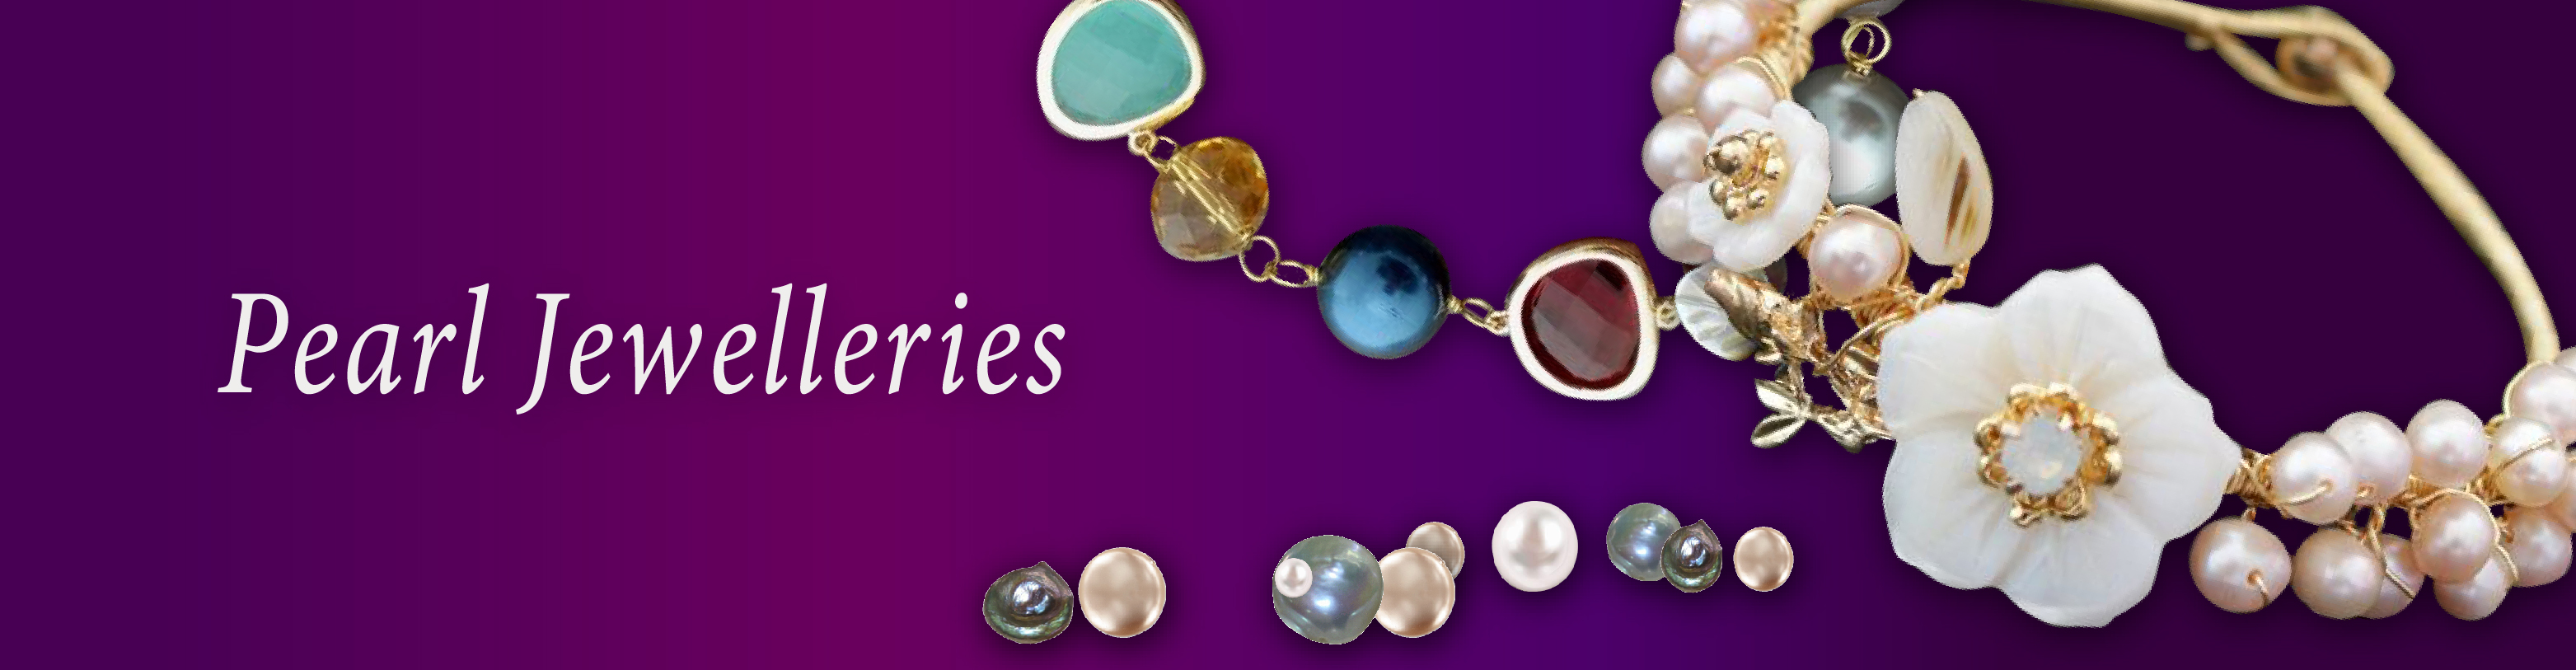 ee2e85282 Genuine Cultured Pearl Jewelry at Leisfita.com from Bangladesh